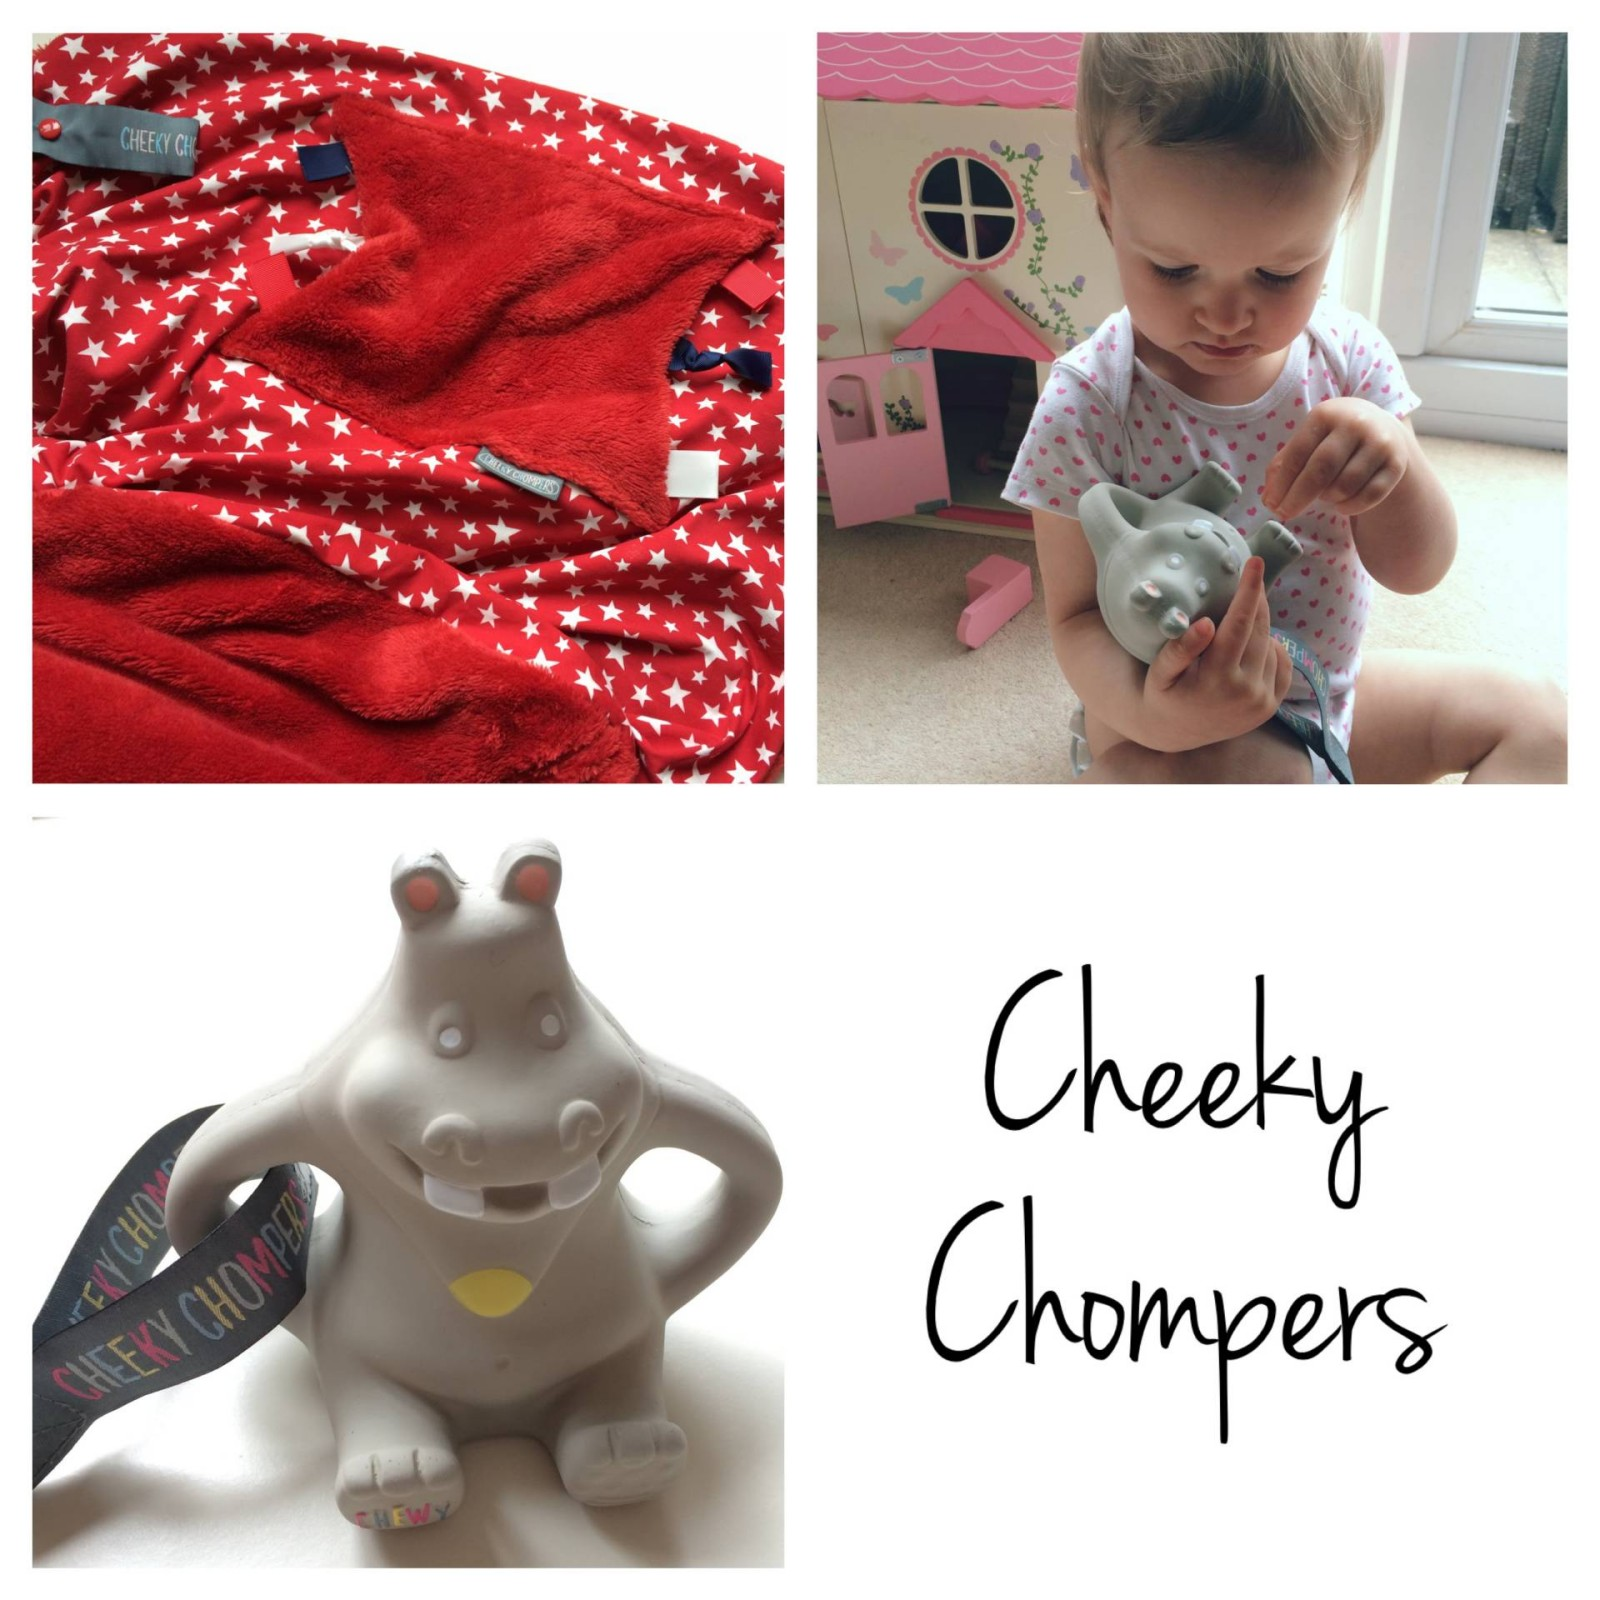 cheeky chompers hippo and blanket